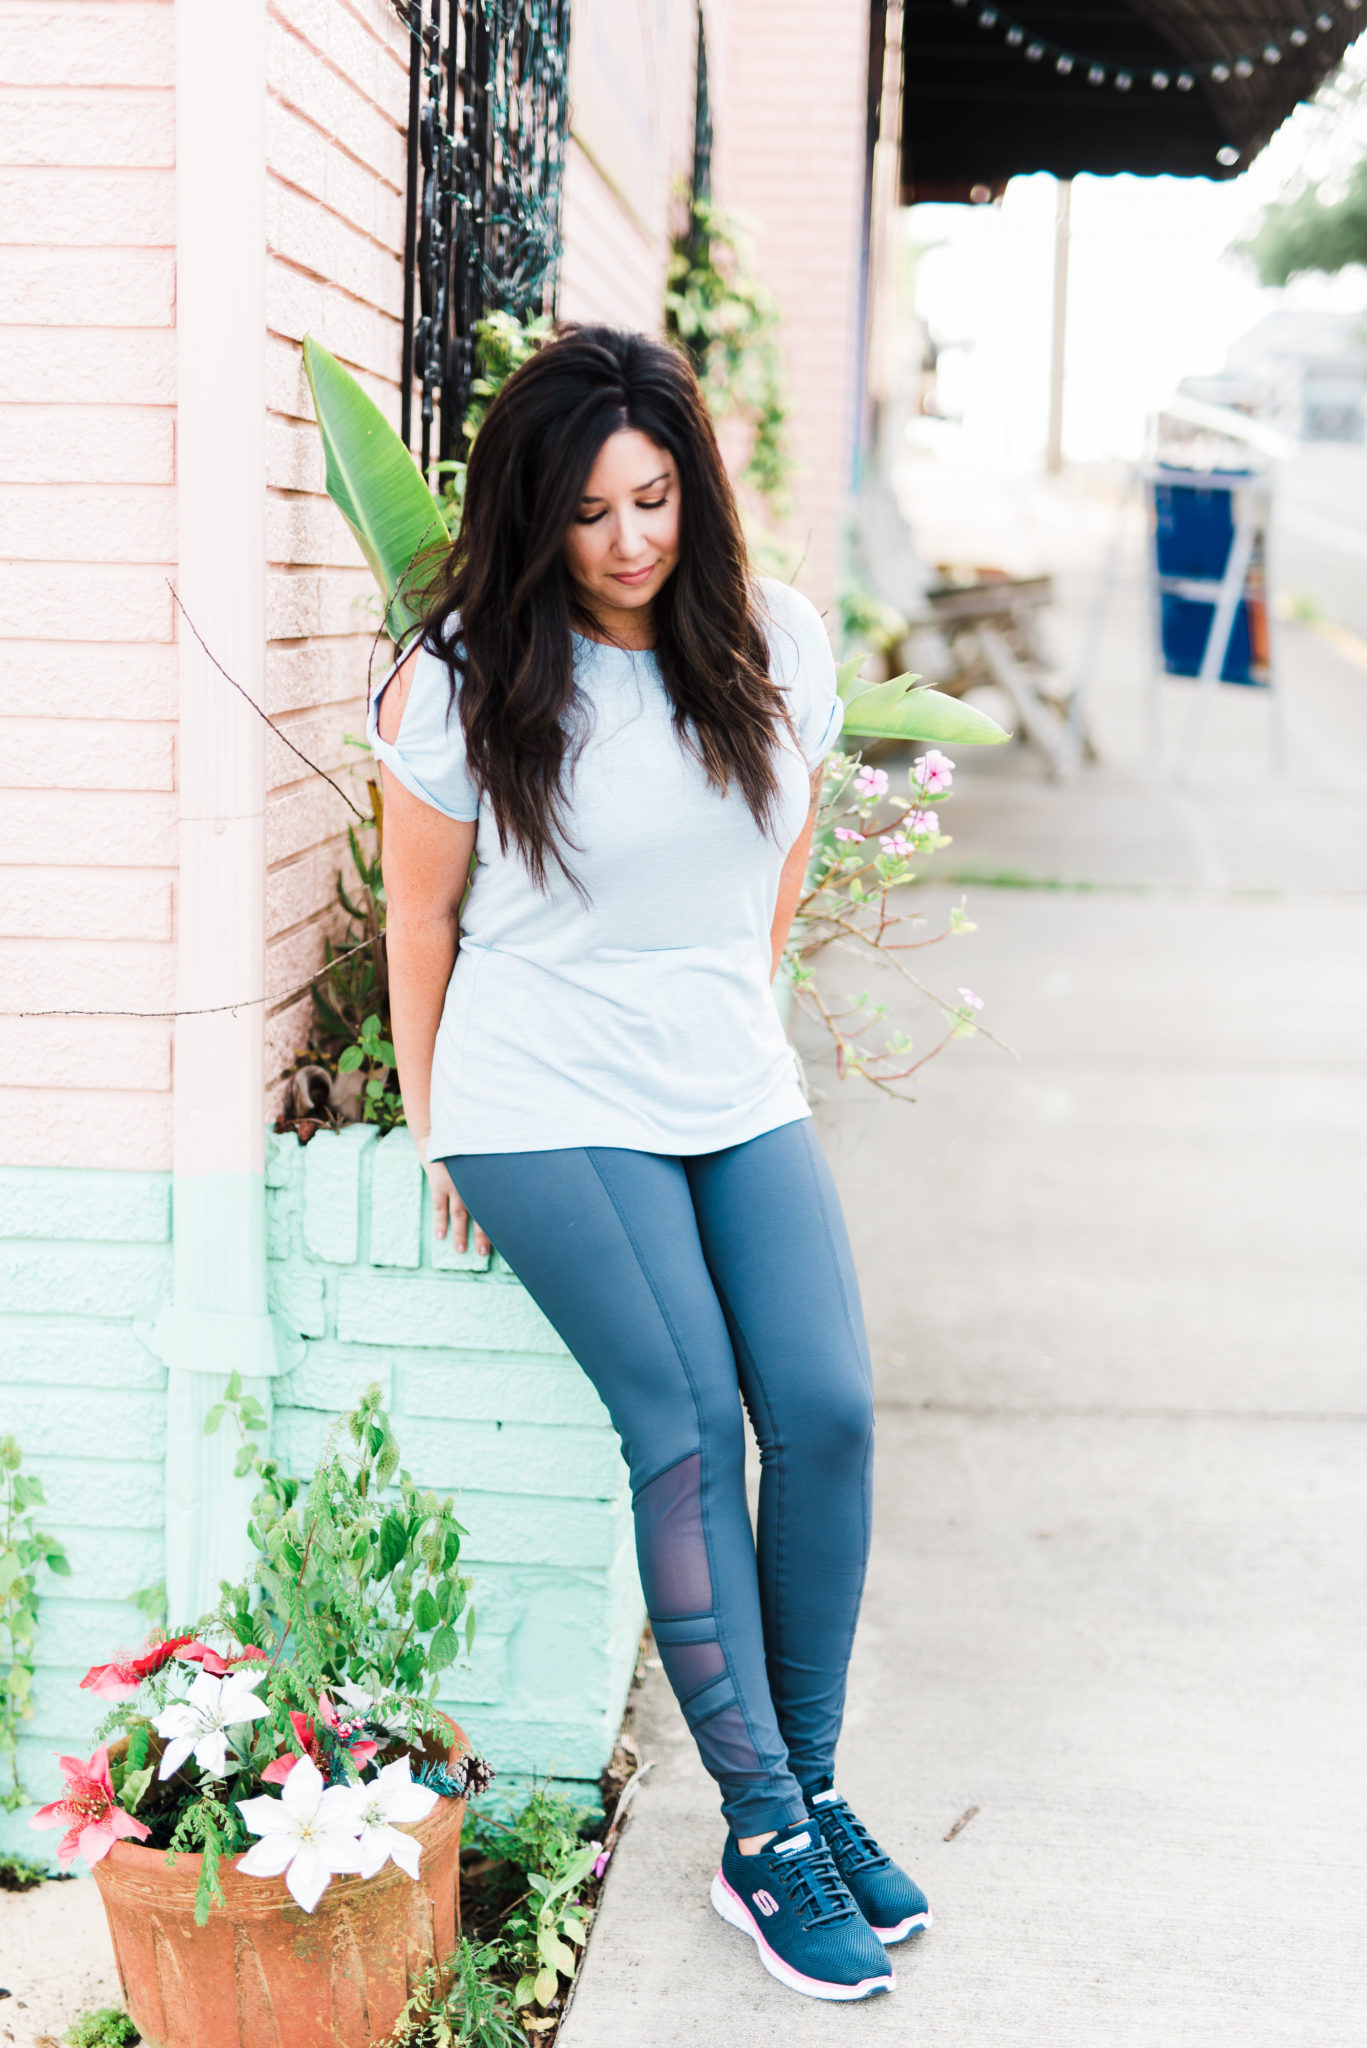 affordable athleisure weekend style for busy moms on the go